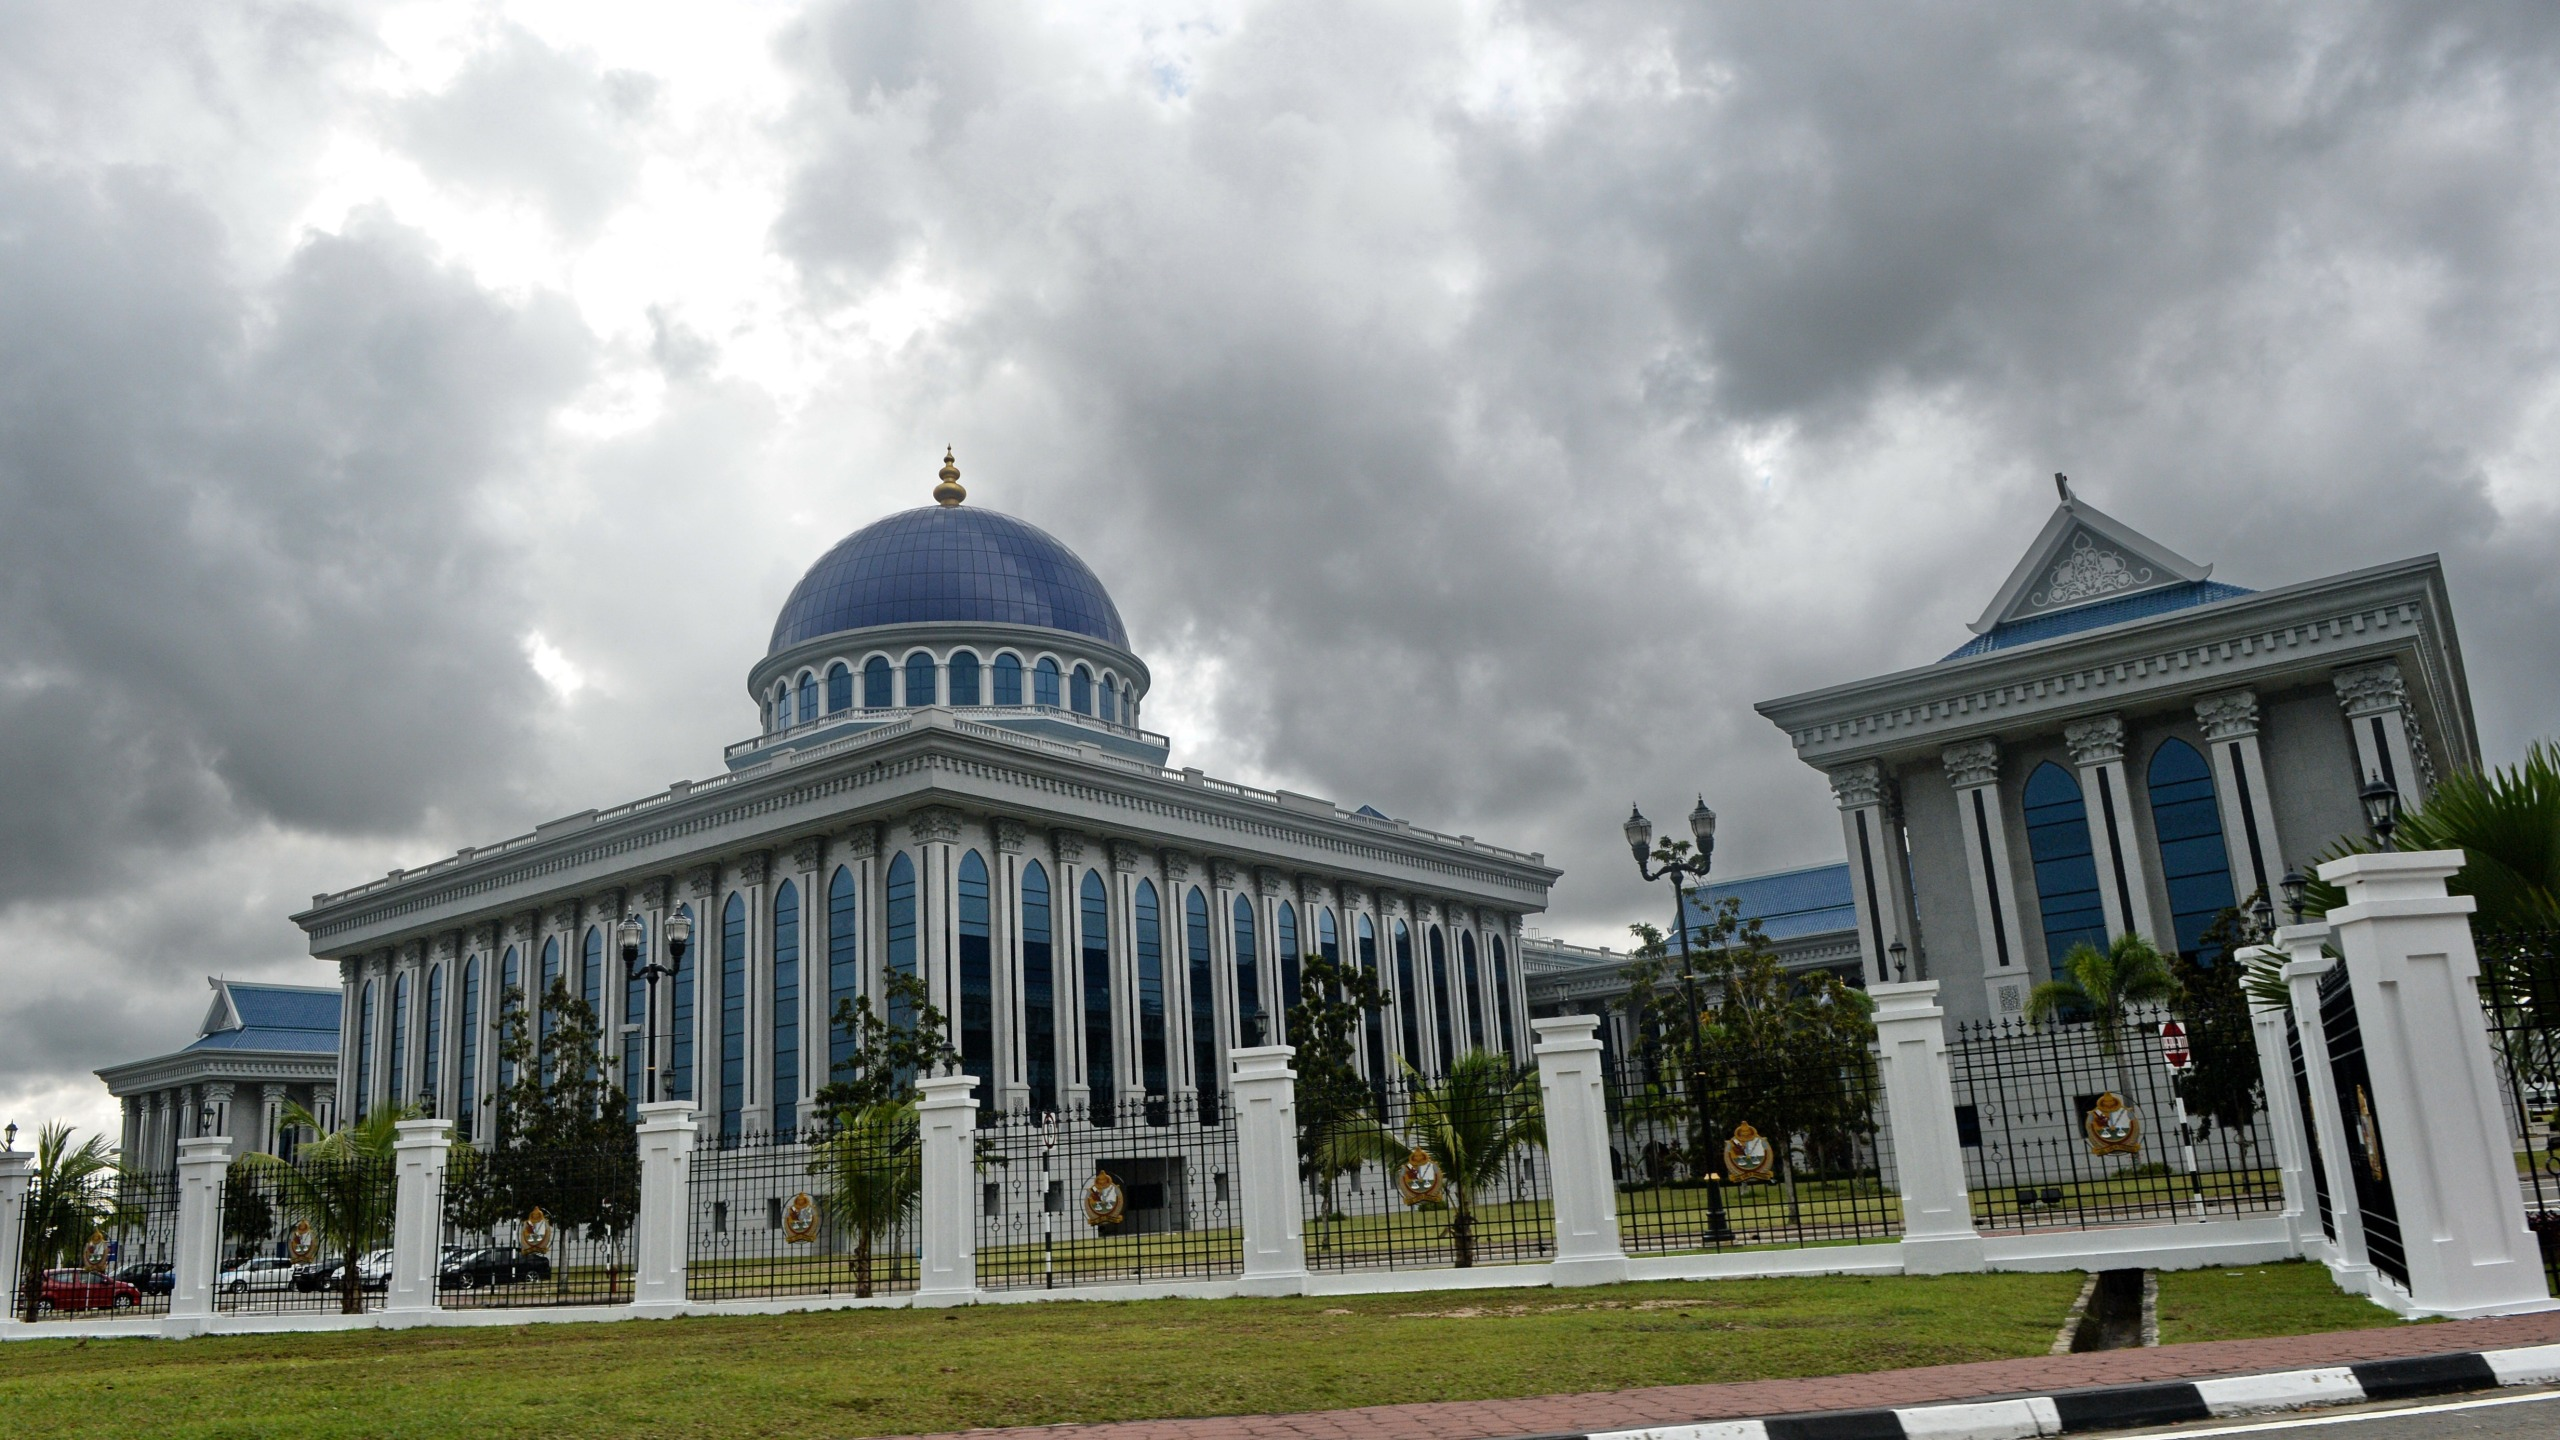 A Brunei parliament building is seen in the capital city Bandar Seri Begawan on April 26, 2013. (Credit: ROSLAN RAHMAN/AFP/Getty Images)